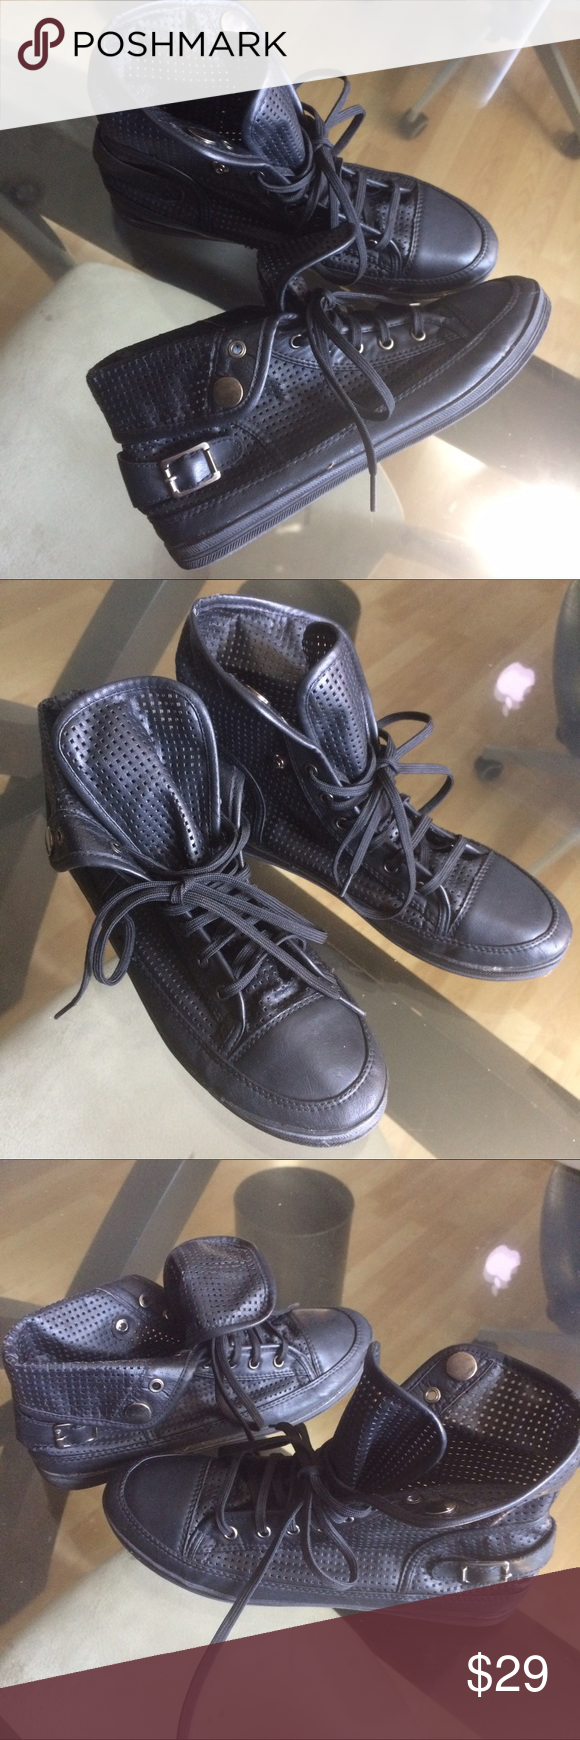 Perforated sneakers vegan leather worn wear high tops and ankle